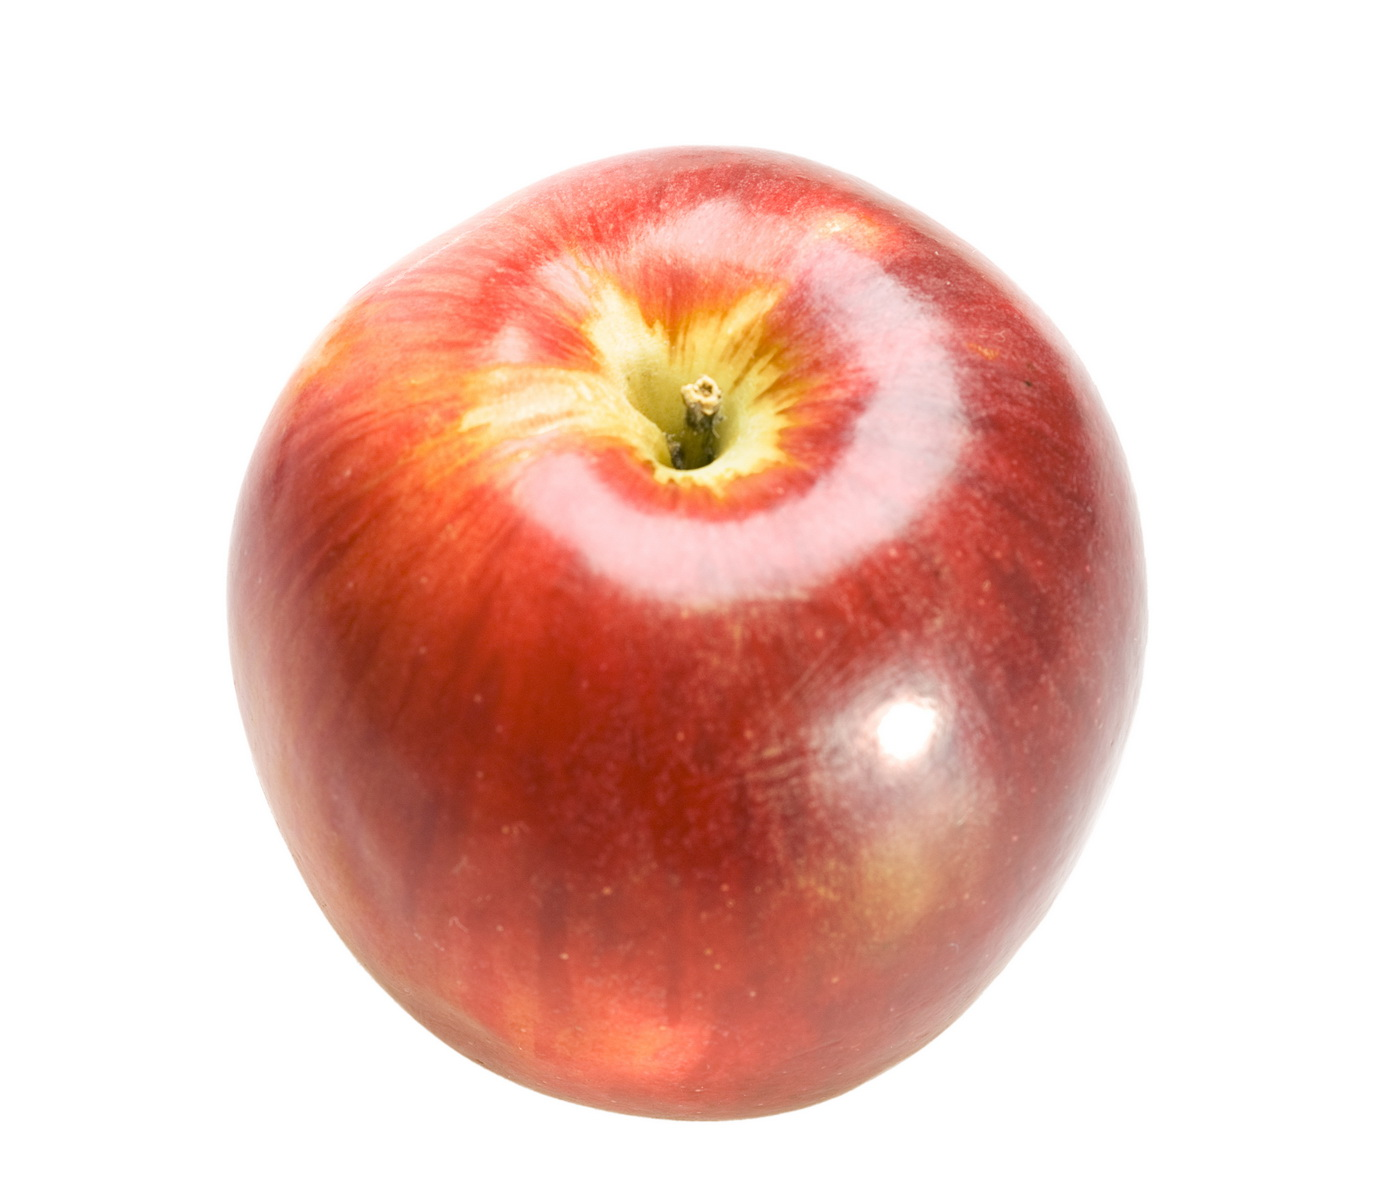 Red apple photo